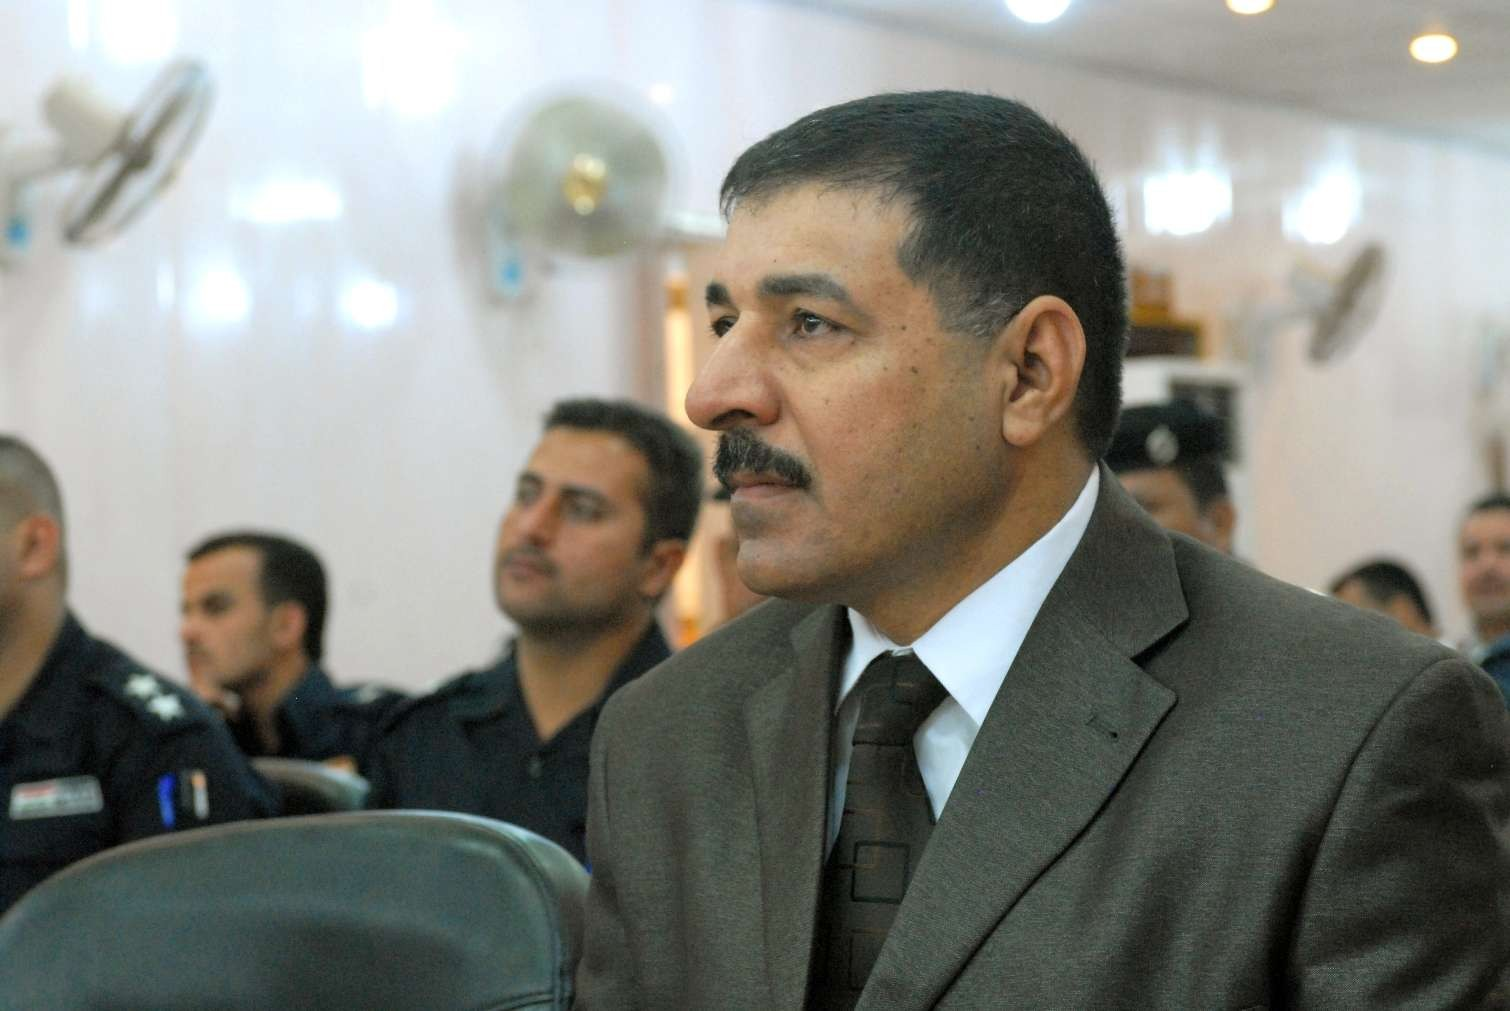 Iraqi Police confront counterfeiting | Article | The ...